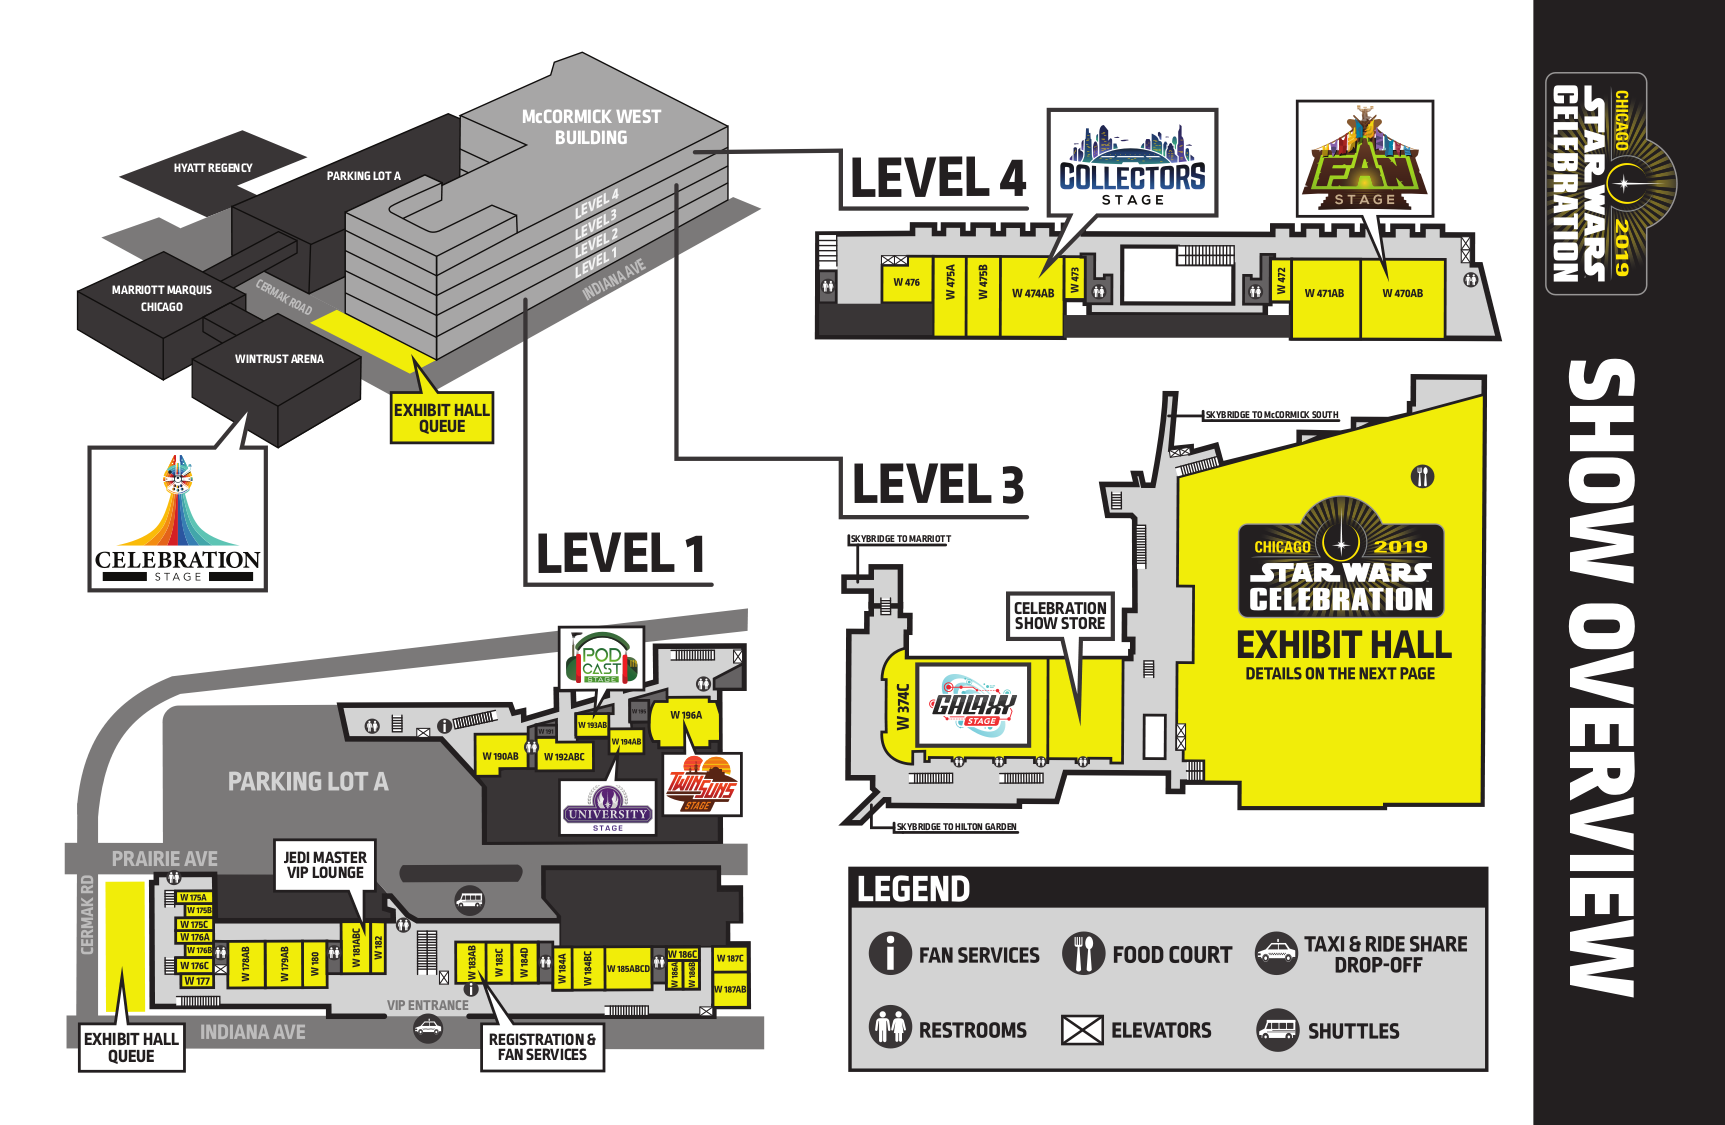 Star Wars Celebration Chicago 2019 Show Overview Map